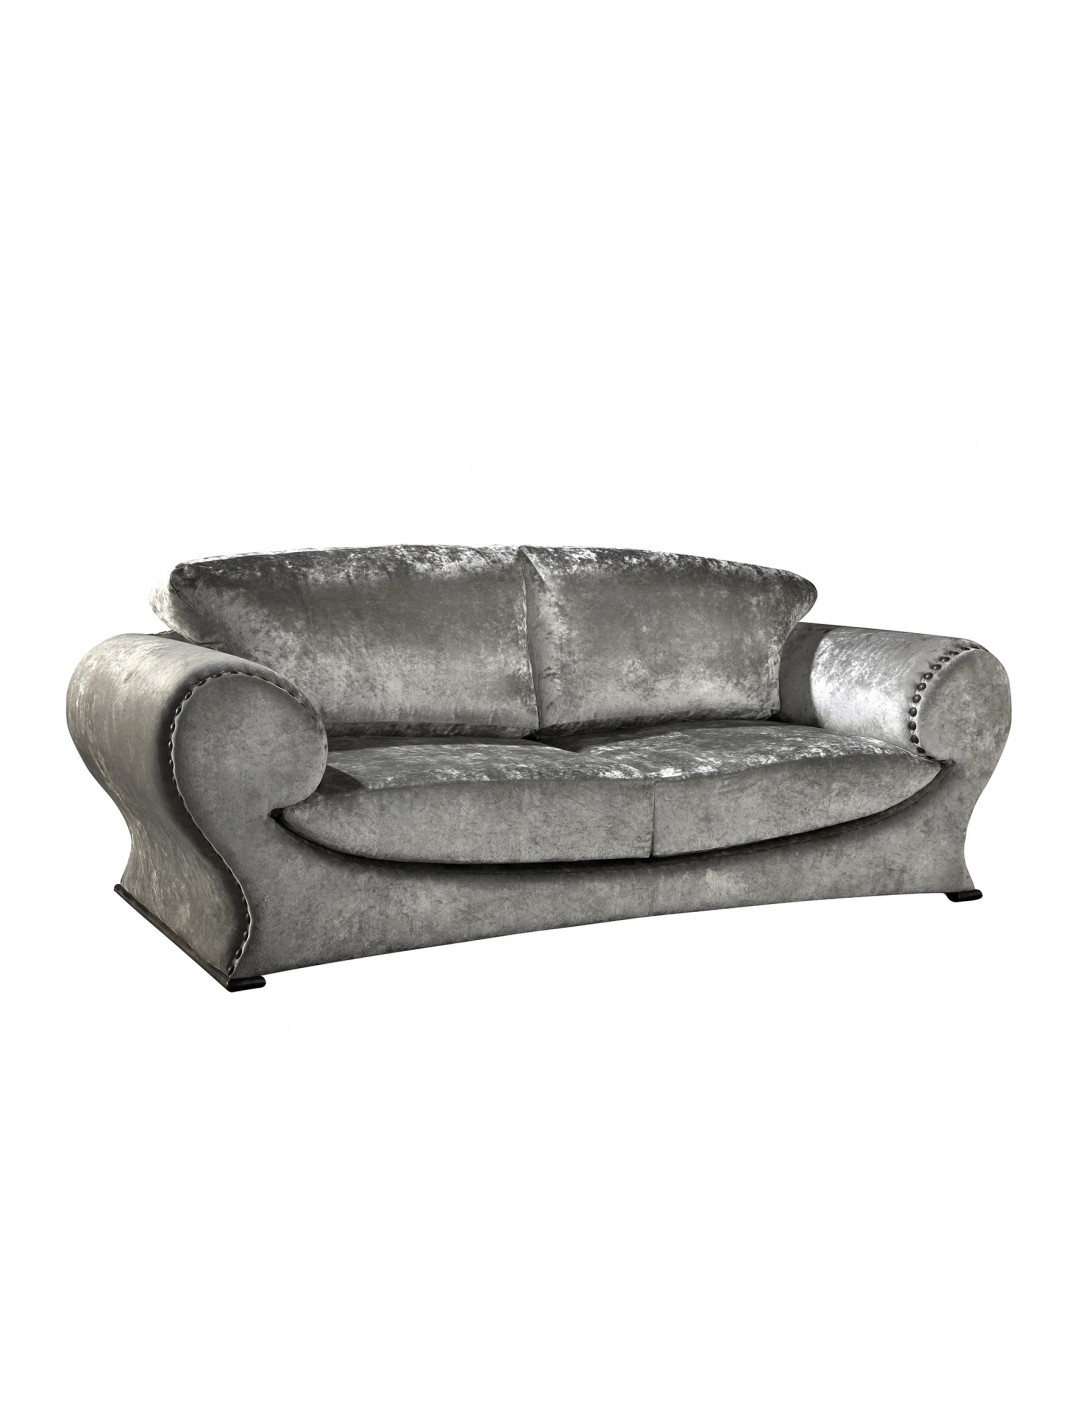 MARIBEL 3-SEATER SOFA, WITH DRAWING PINS ON ARMS AND BACK, METAL BASE, C.O.M.